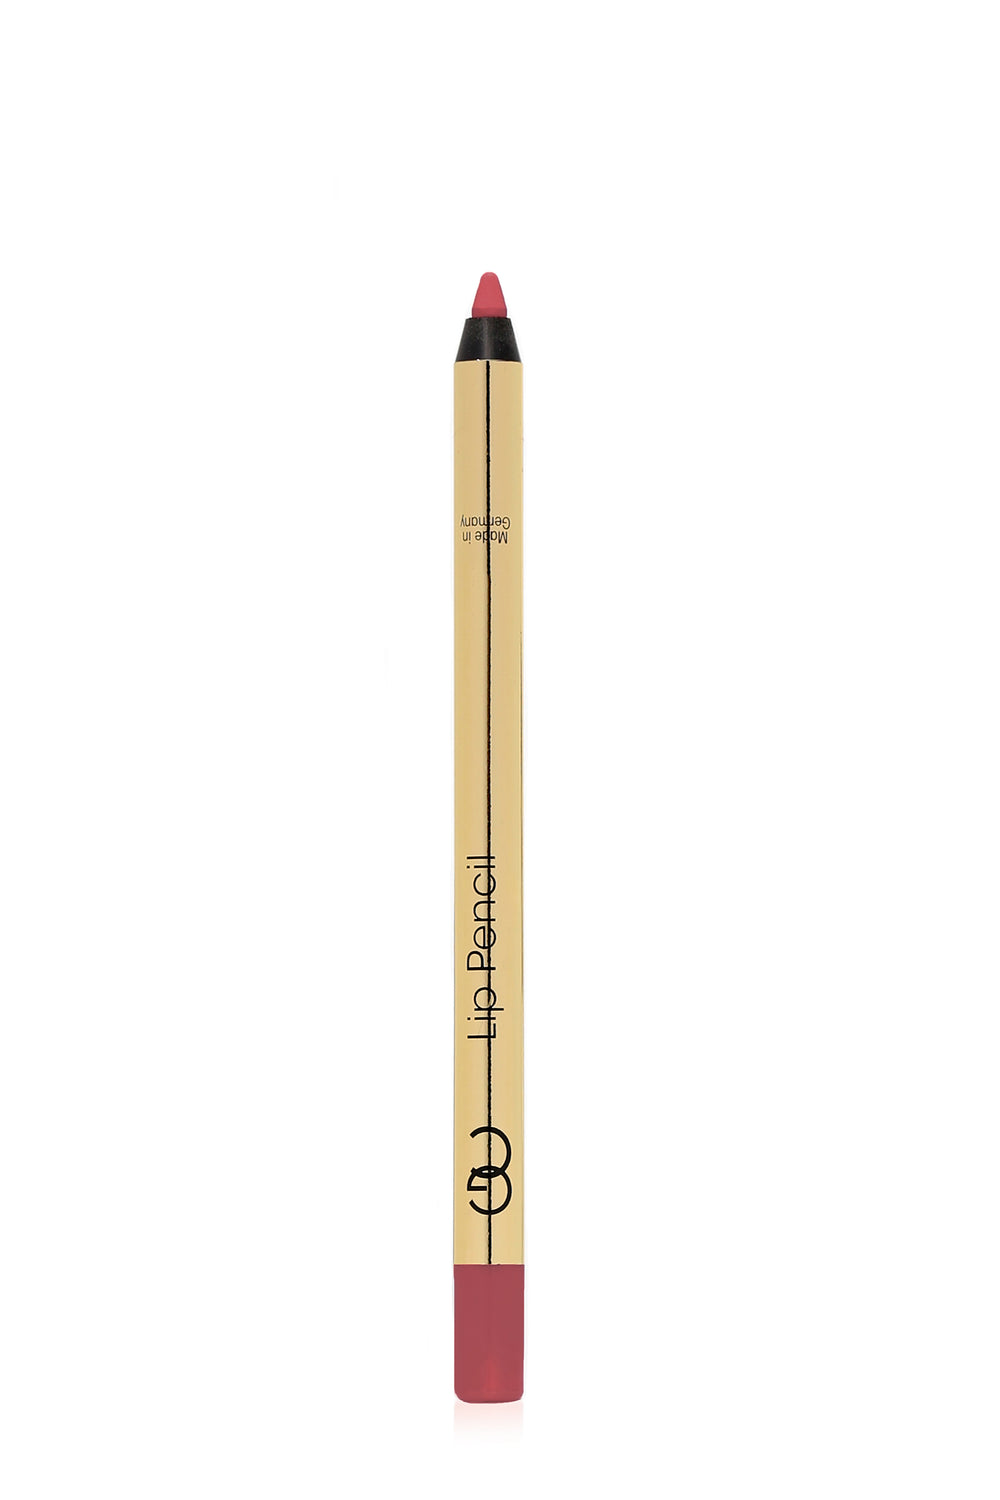 Gerard Cosmetics Lip Pencil - Melrose Place